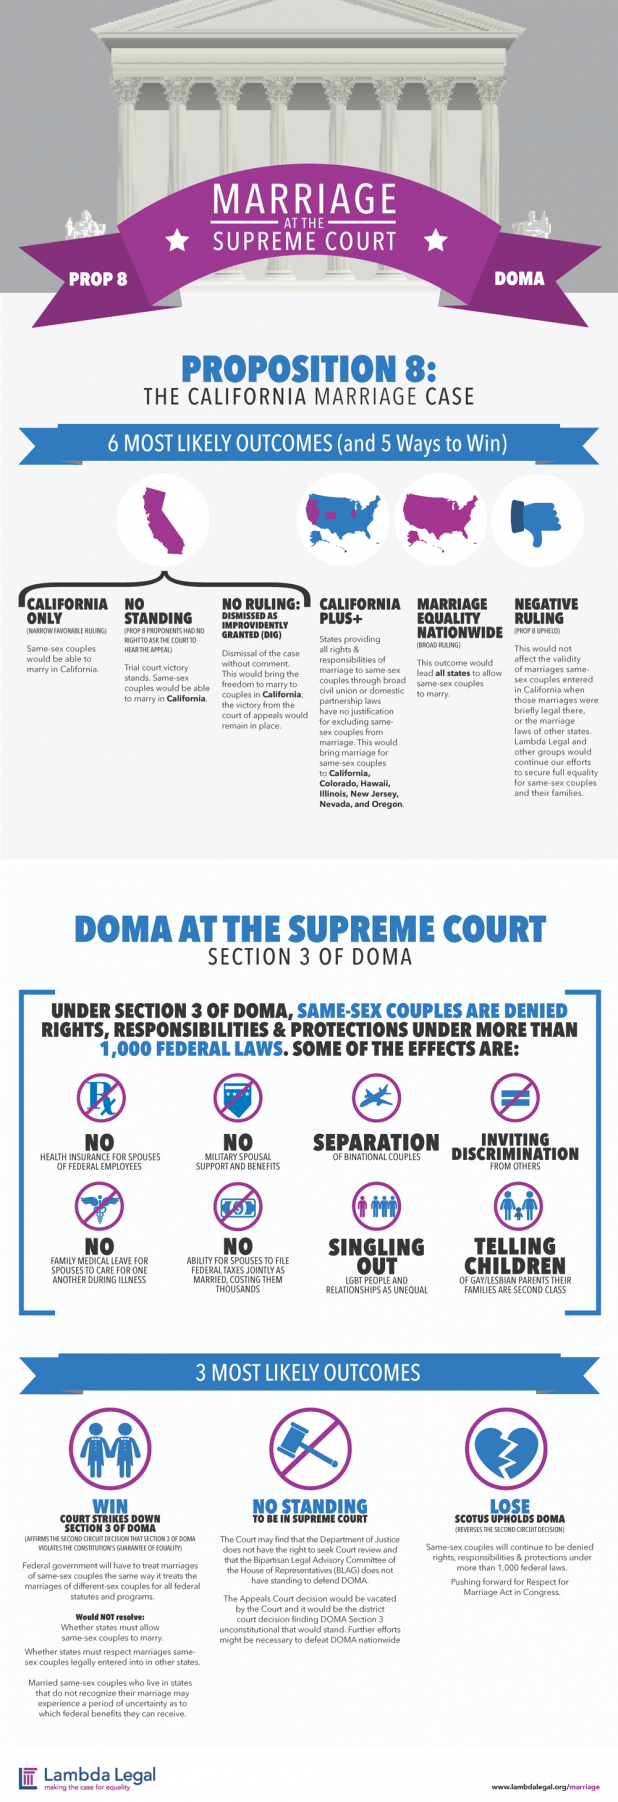 Marriage at the Supreme Court